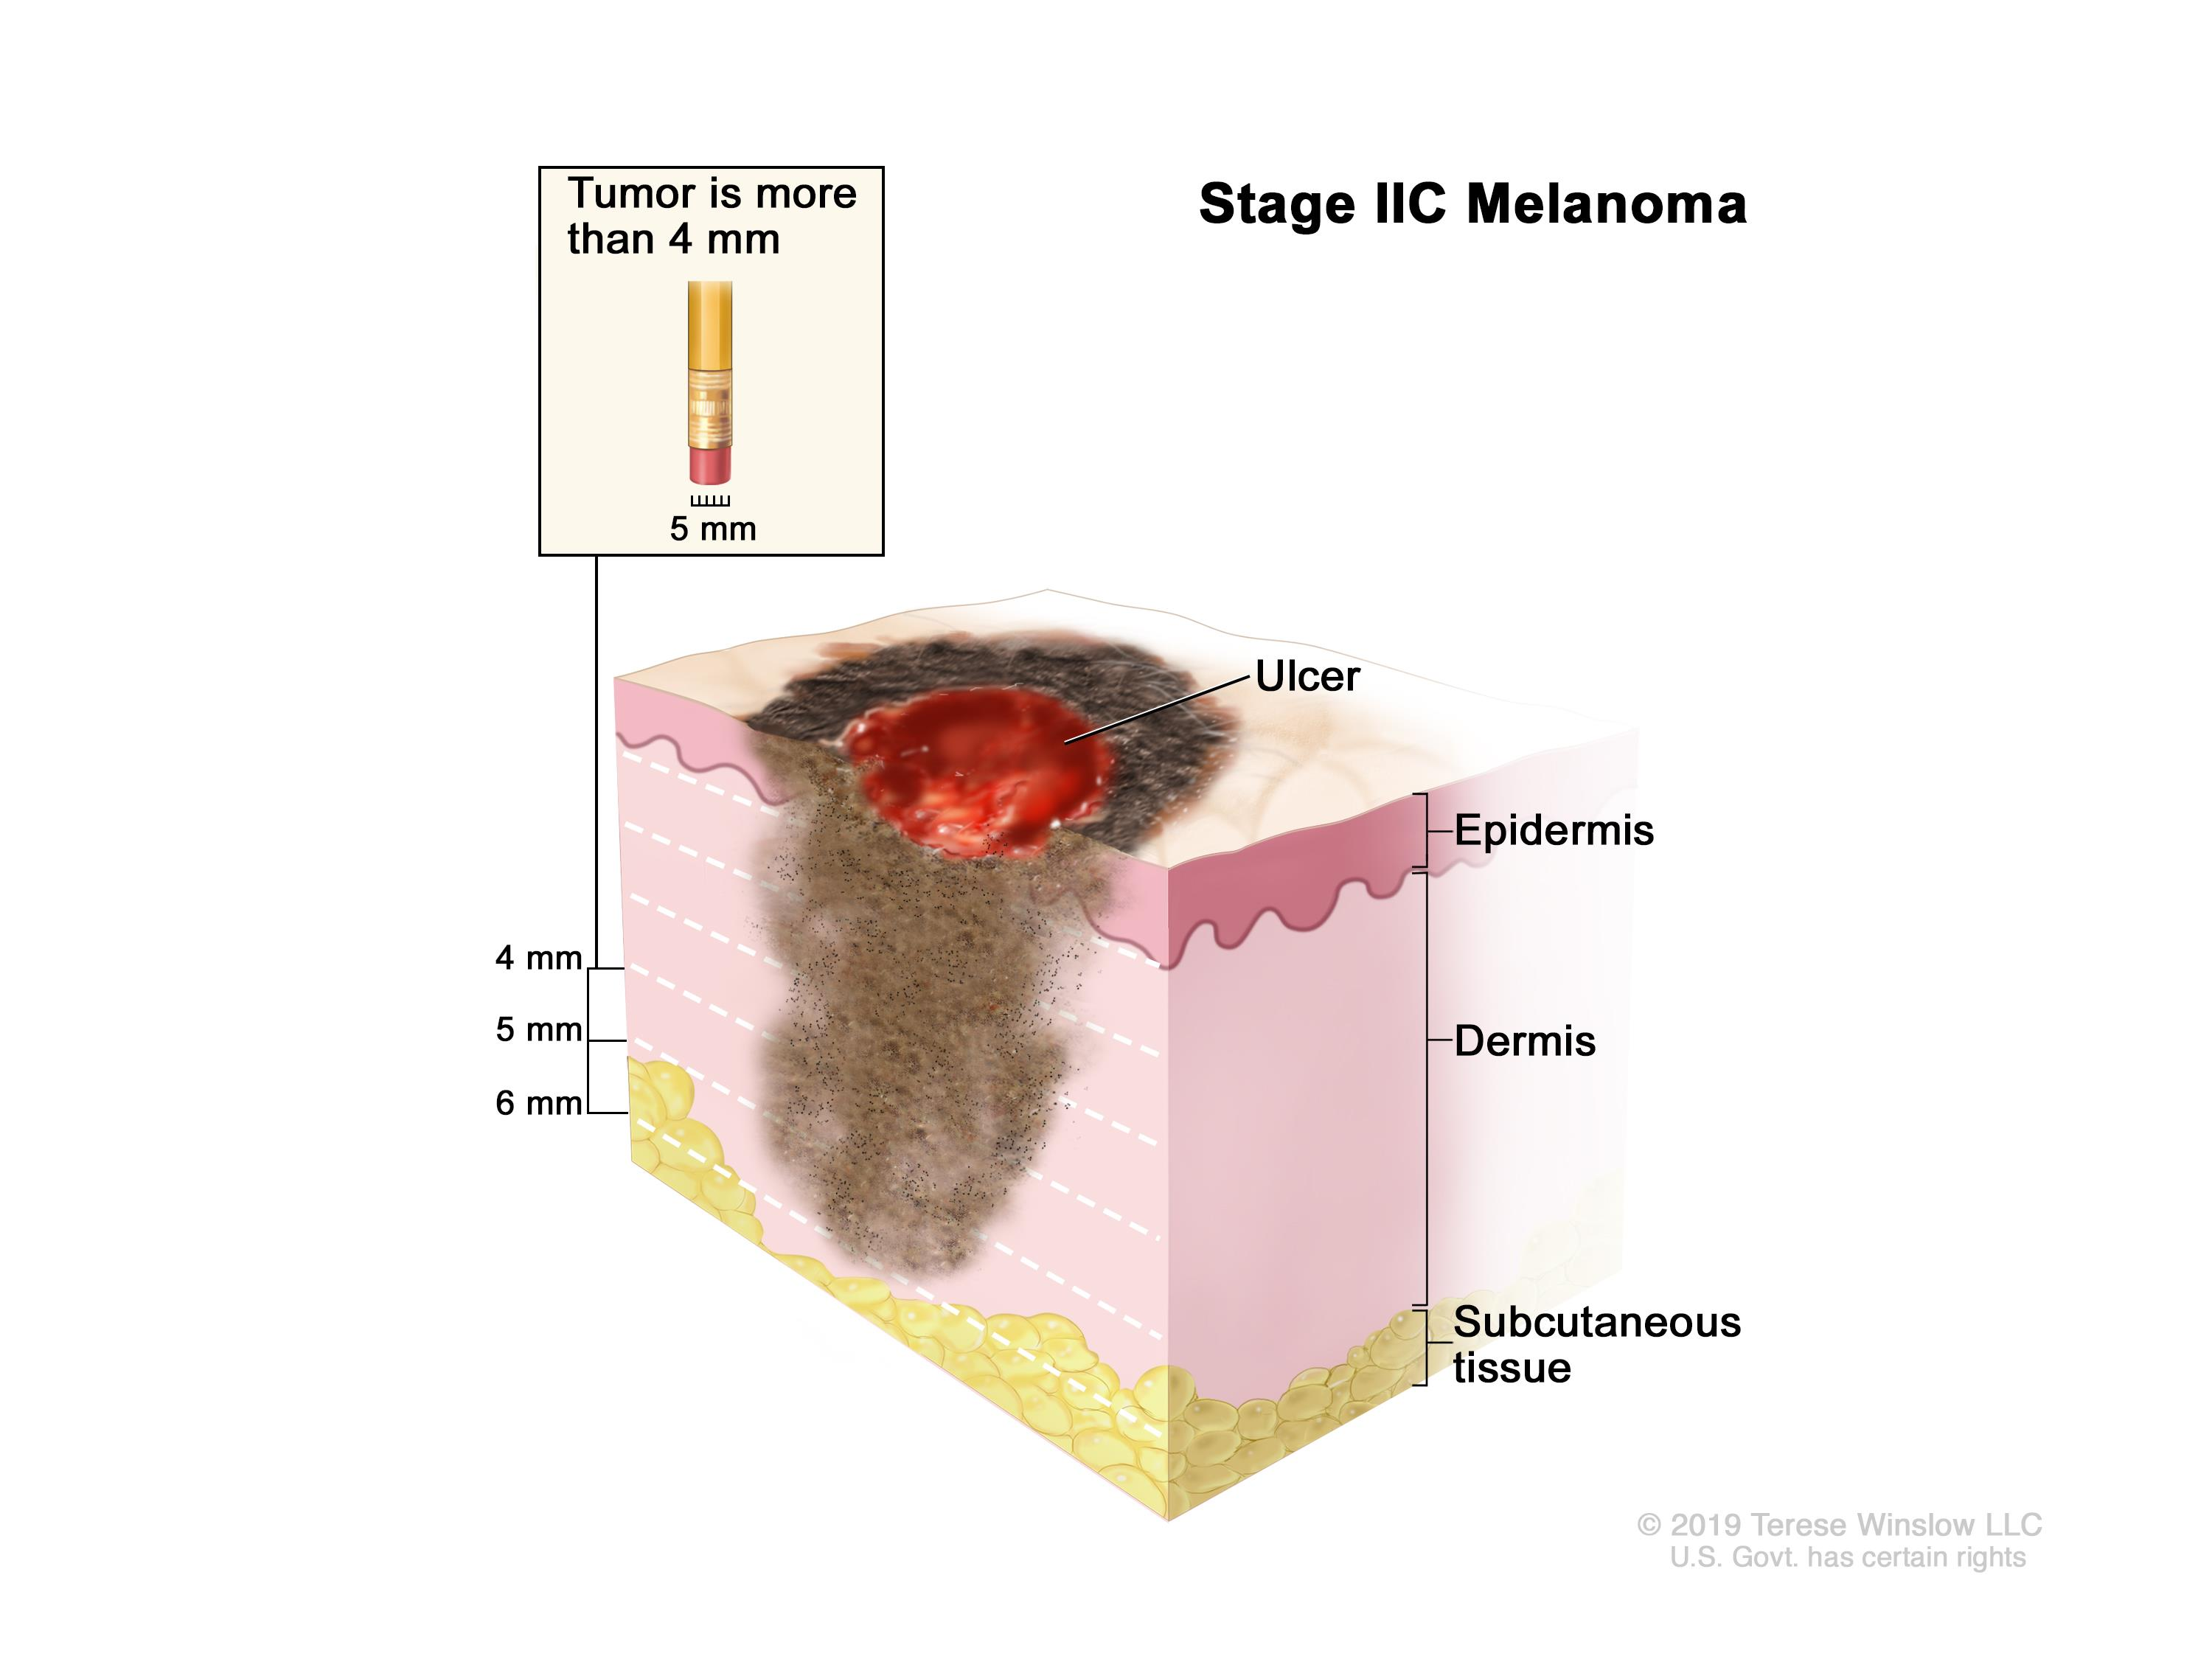 Stage IIC melanoma; drawing shows a tumor that is more than 4 millimeters thick, with ulceration (a break in the skin). Also shown are the epidermis (outer layer of the skin), the dermis (inner layer of the skin), and the subcutaneous tissue below the dermis.